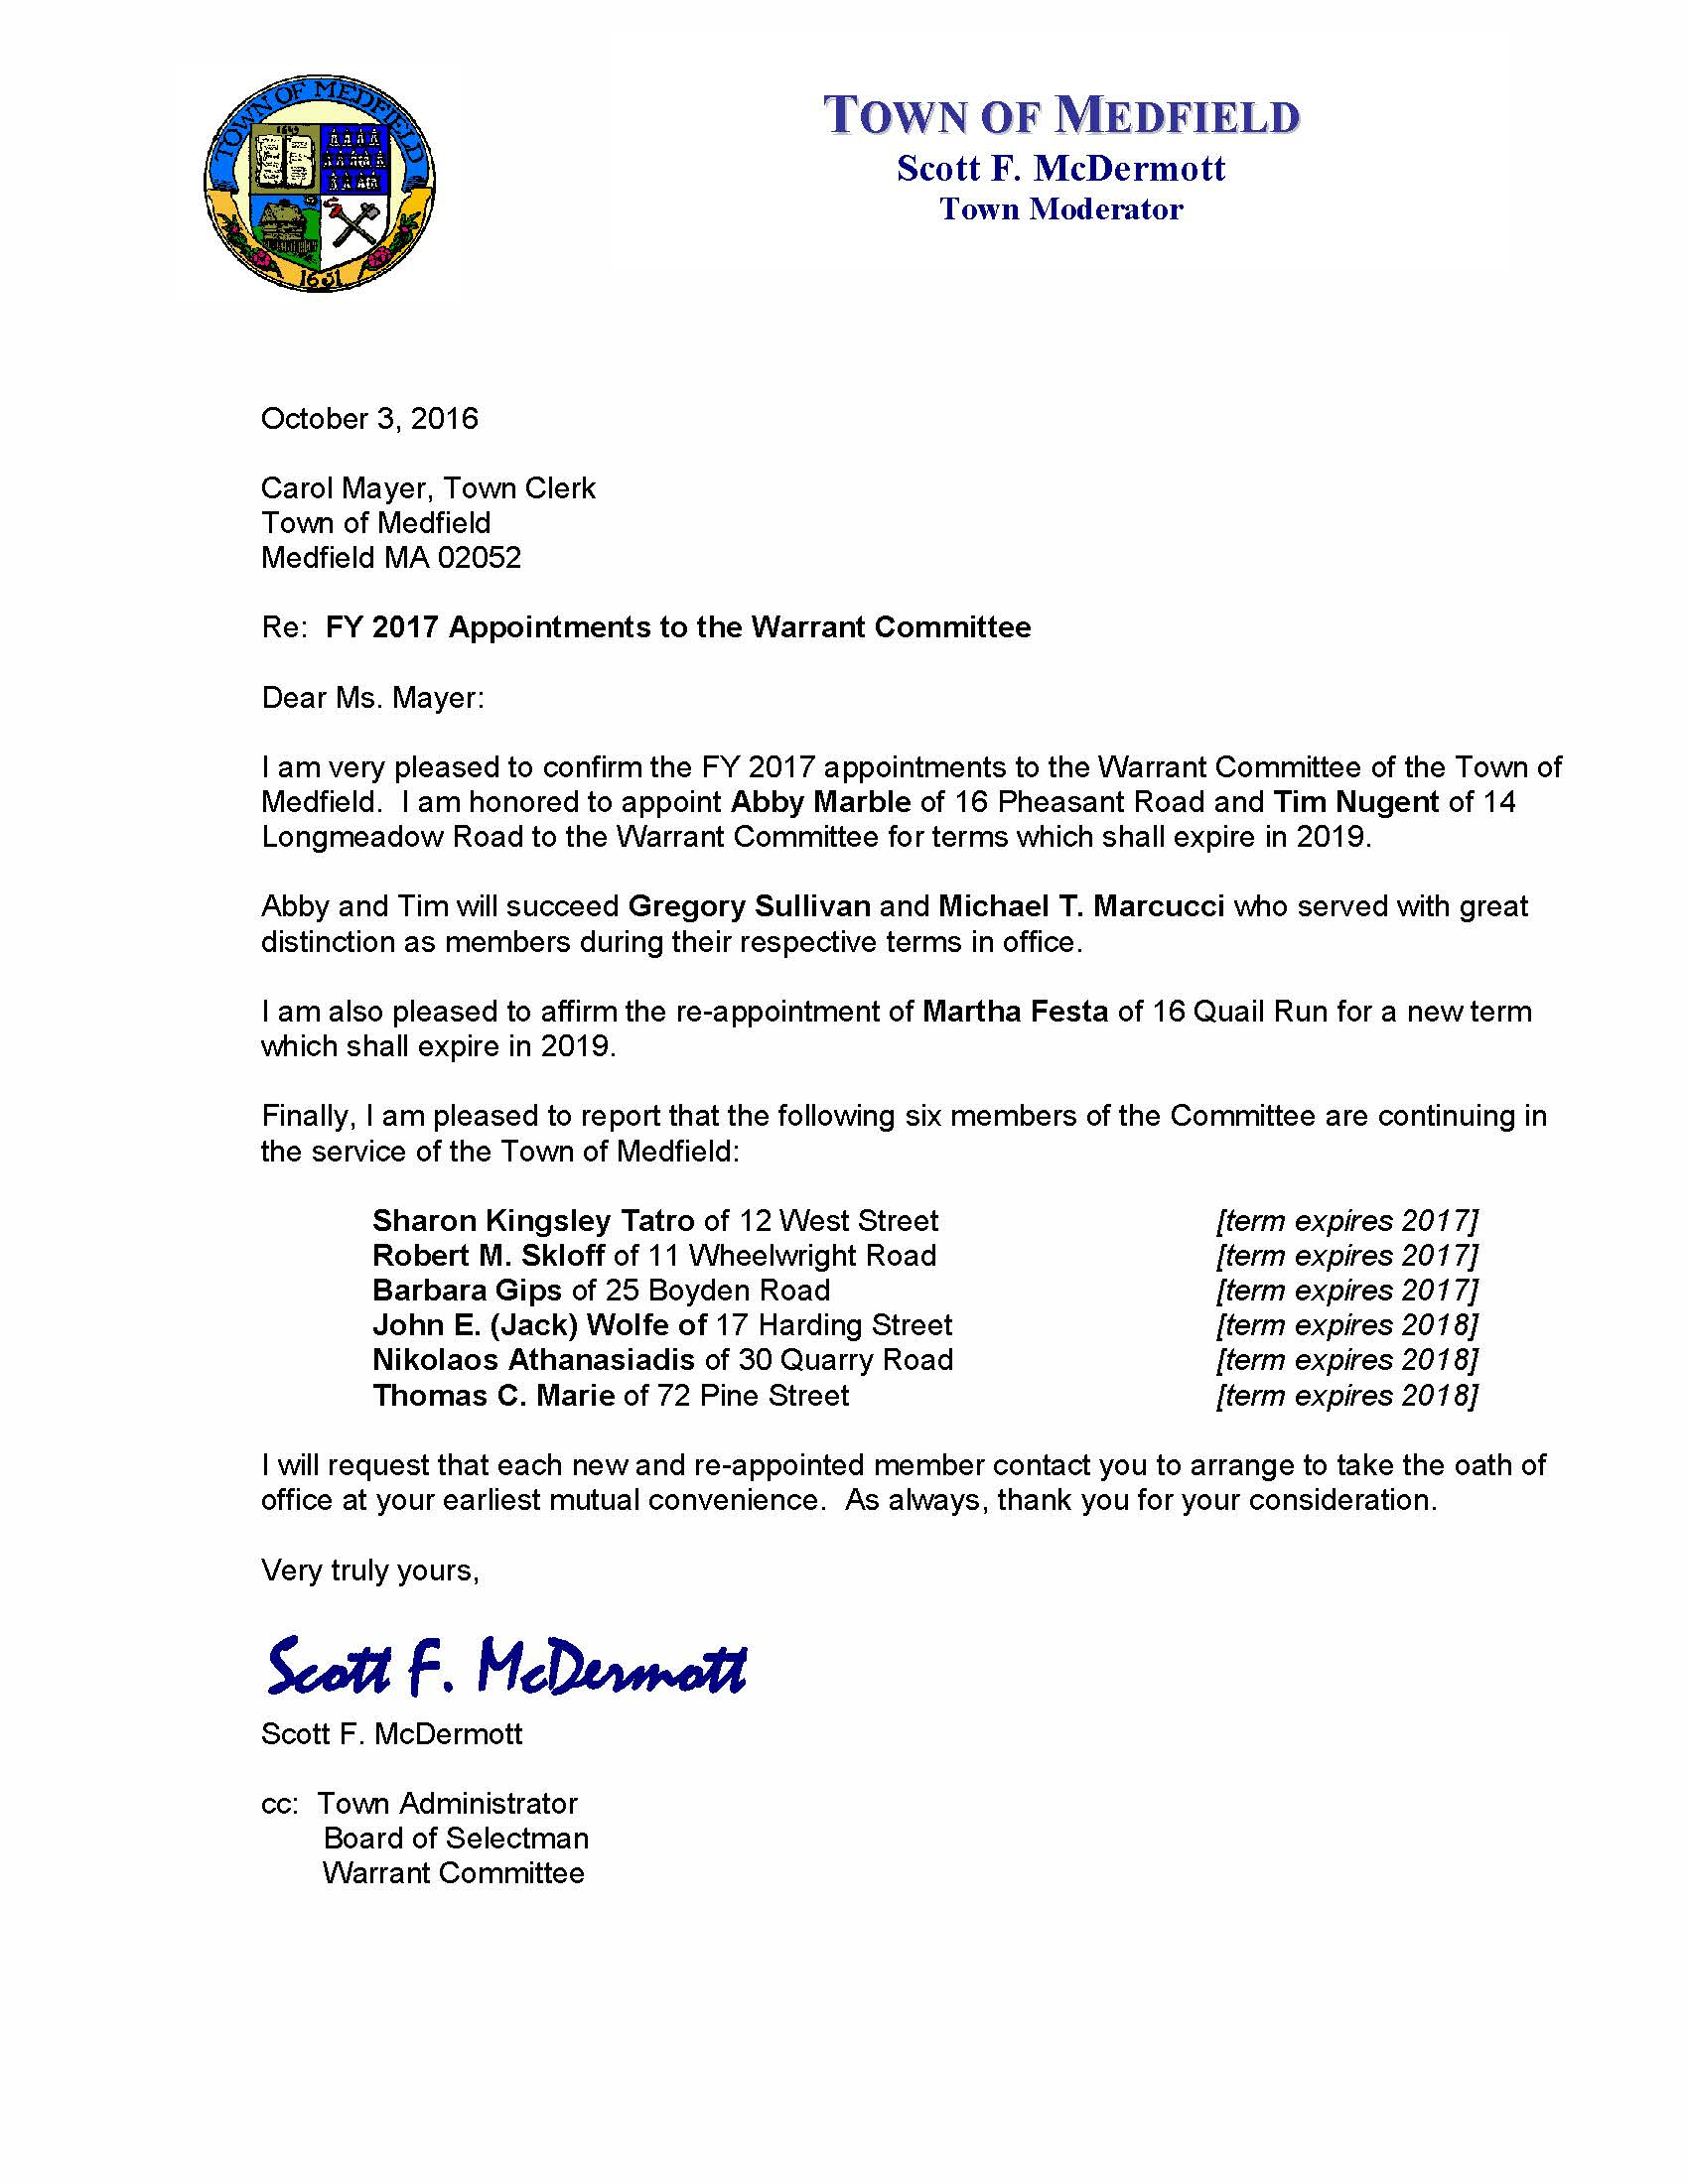 20161003-smcd-medmod-warrant-committee-appointments-2016-2017_page_1